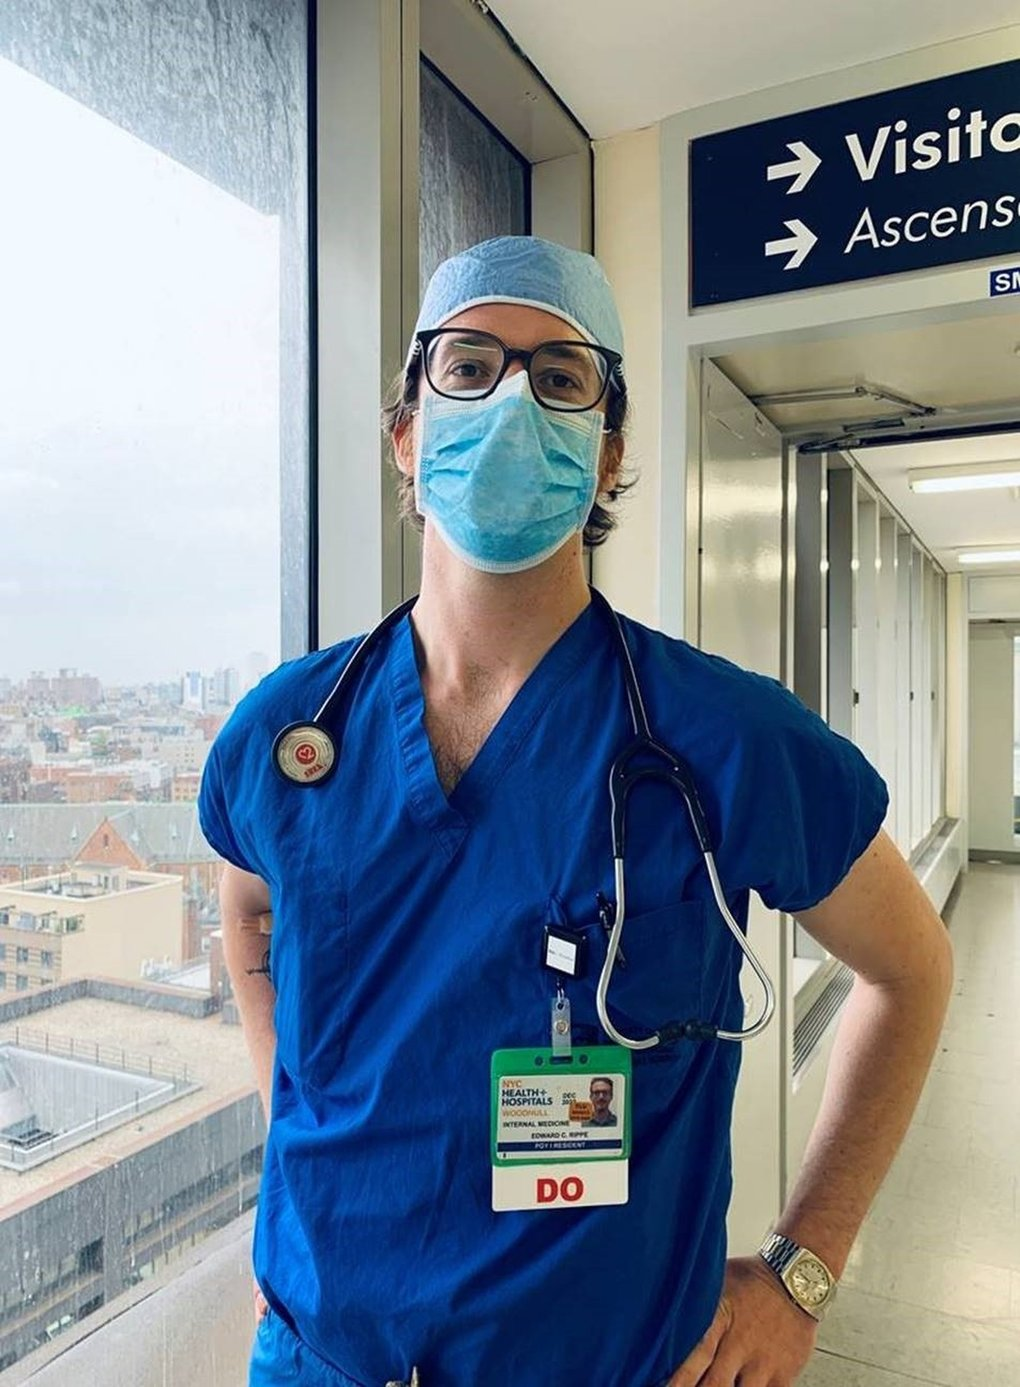 Dr. Edward Rippe, who is from Shoreline, is a first-year medical resident at Woodhull Medical Center in Brooklyn. He contracted COVID-19 in March while treating patients. (Courtesy of Edward Rippe)